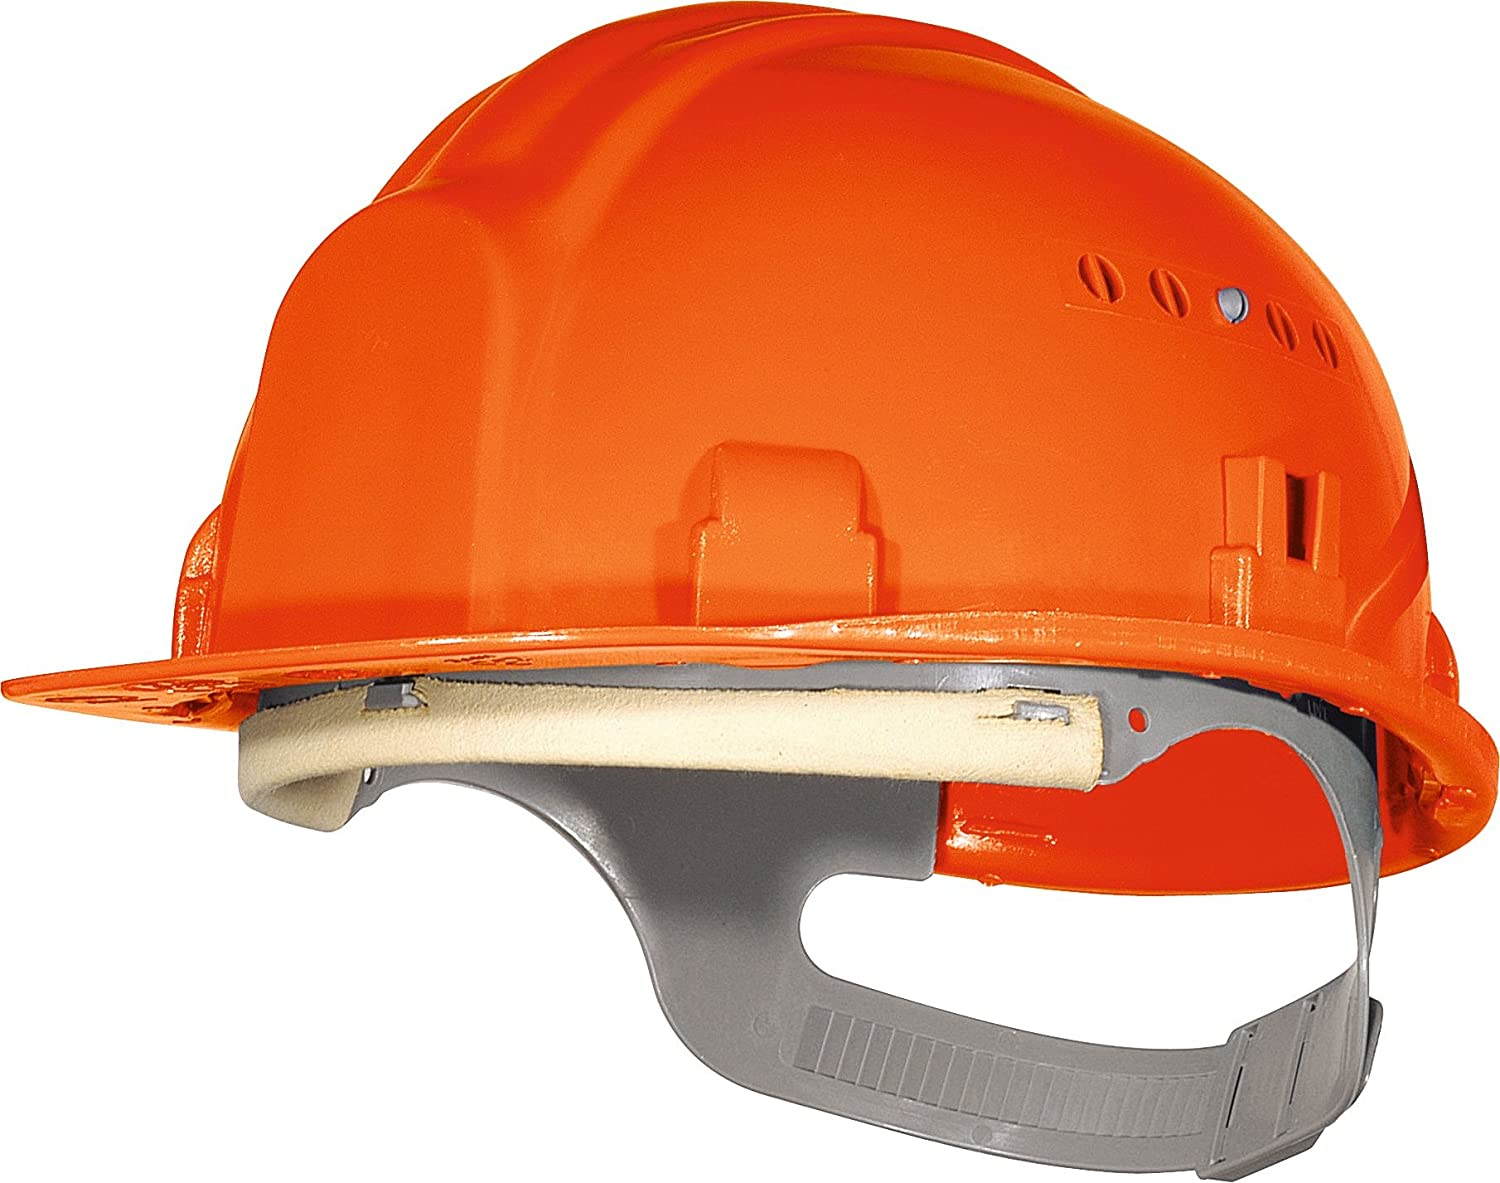 Casque de chantier Outibat - Orange - G1 Bricodeal